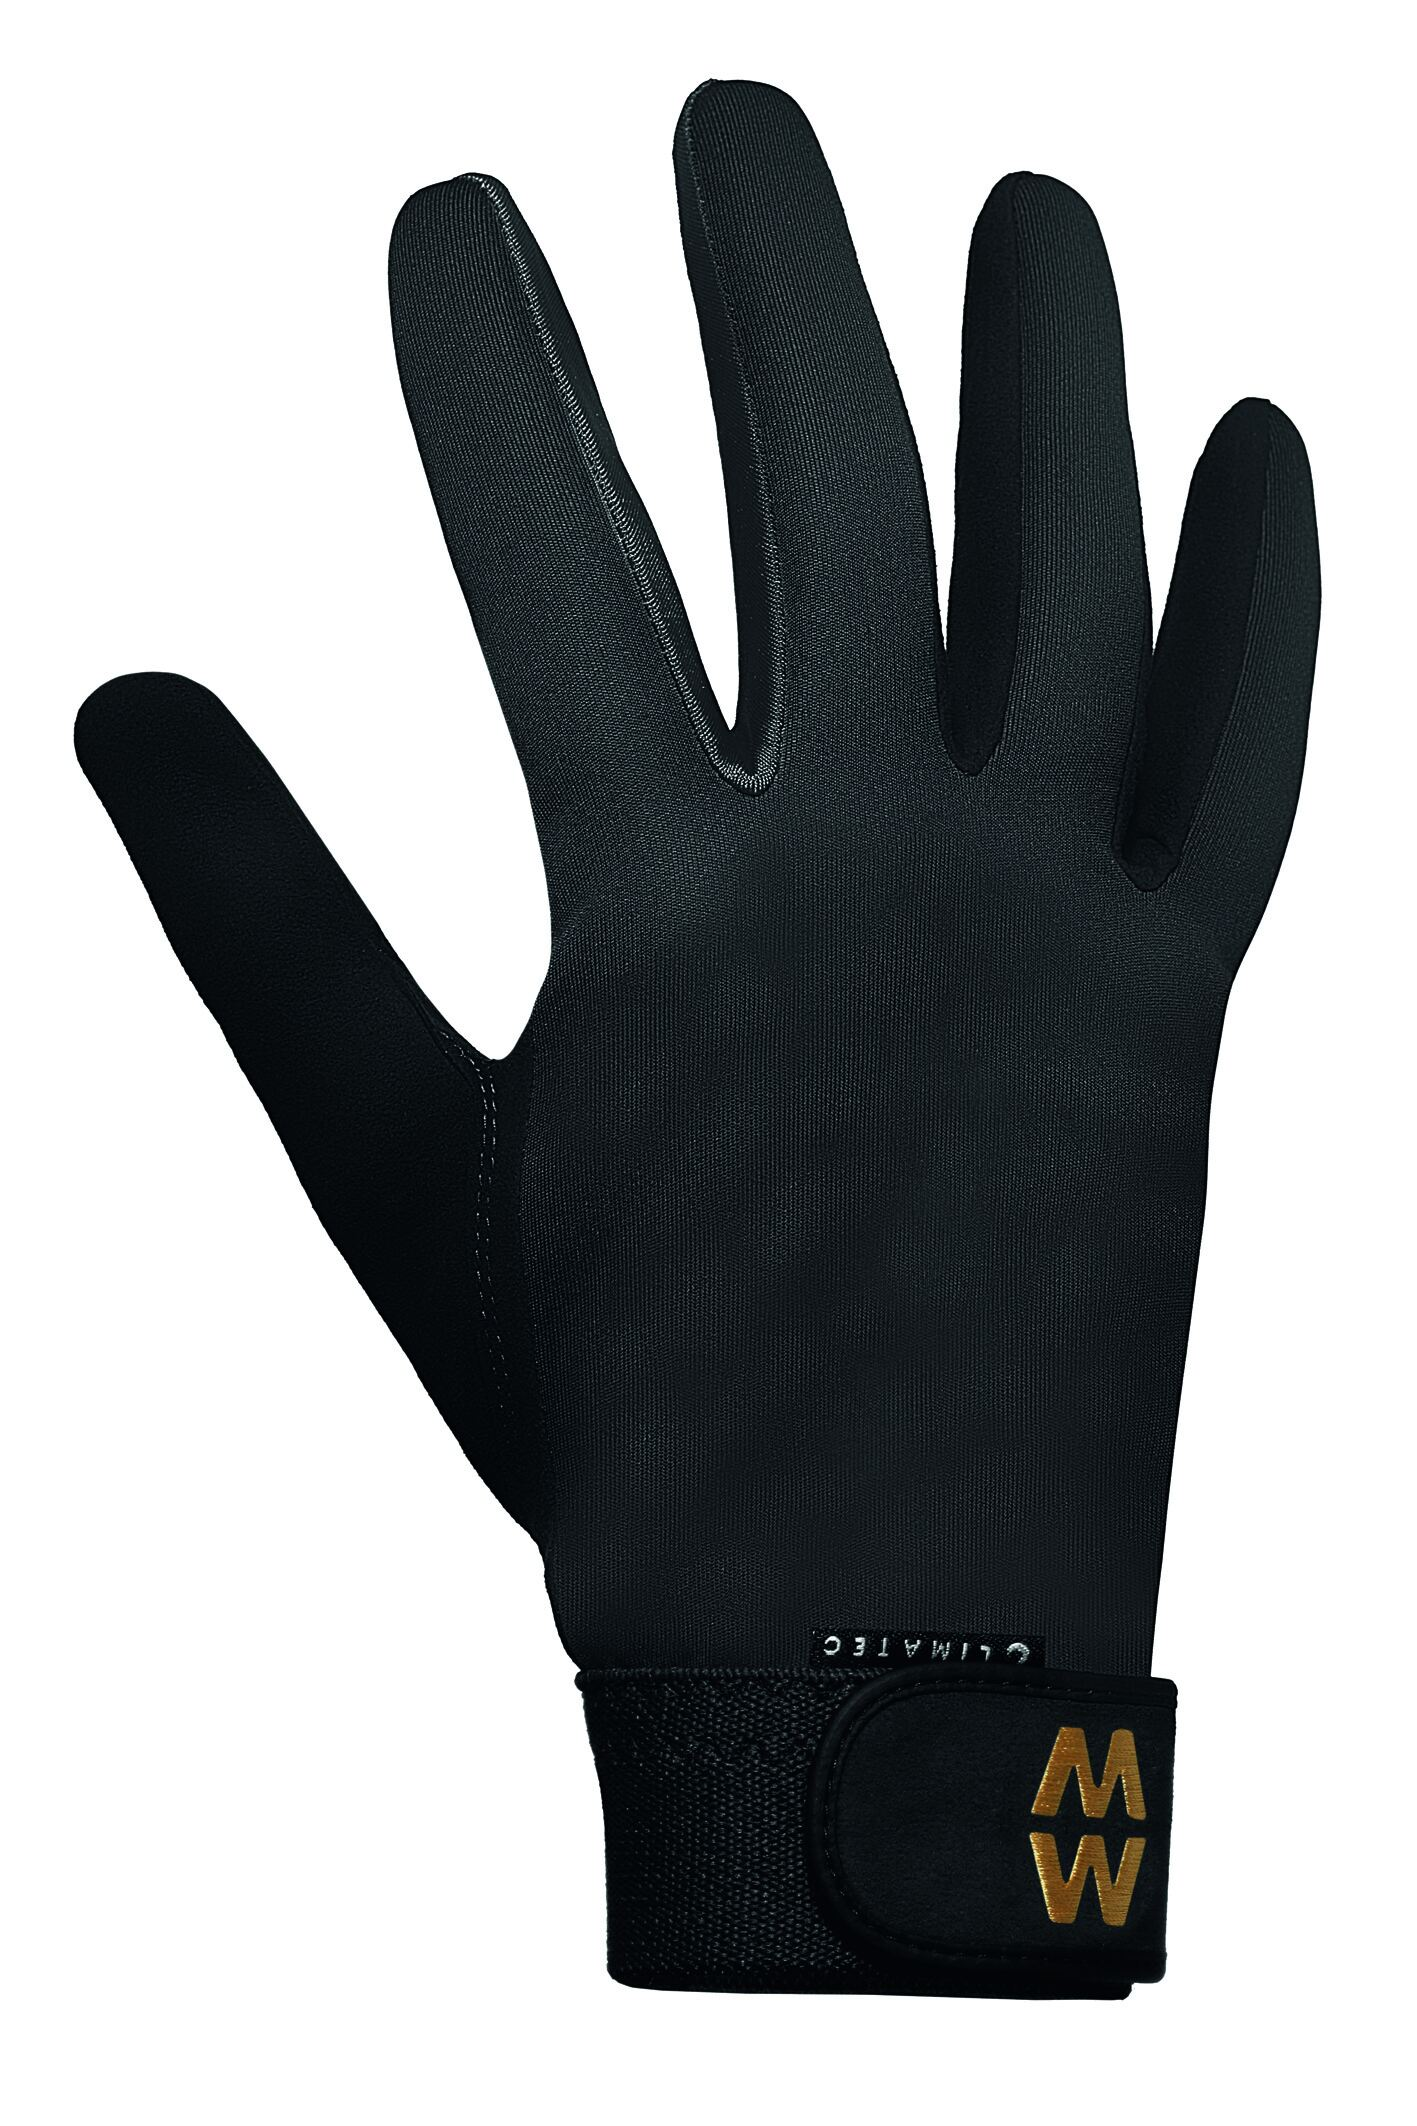 Image of 1 Pair Black MacWet Long Climatec Sports Gloves Unisex 8.5 Unisex - Macwet